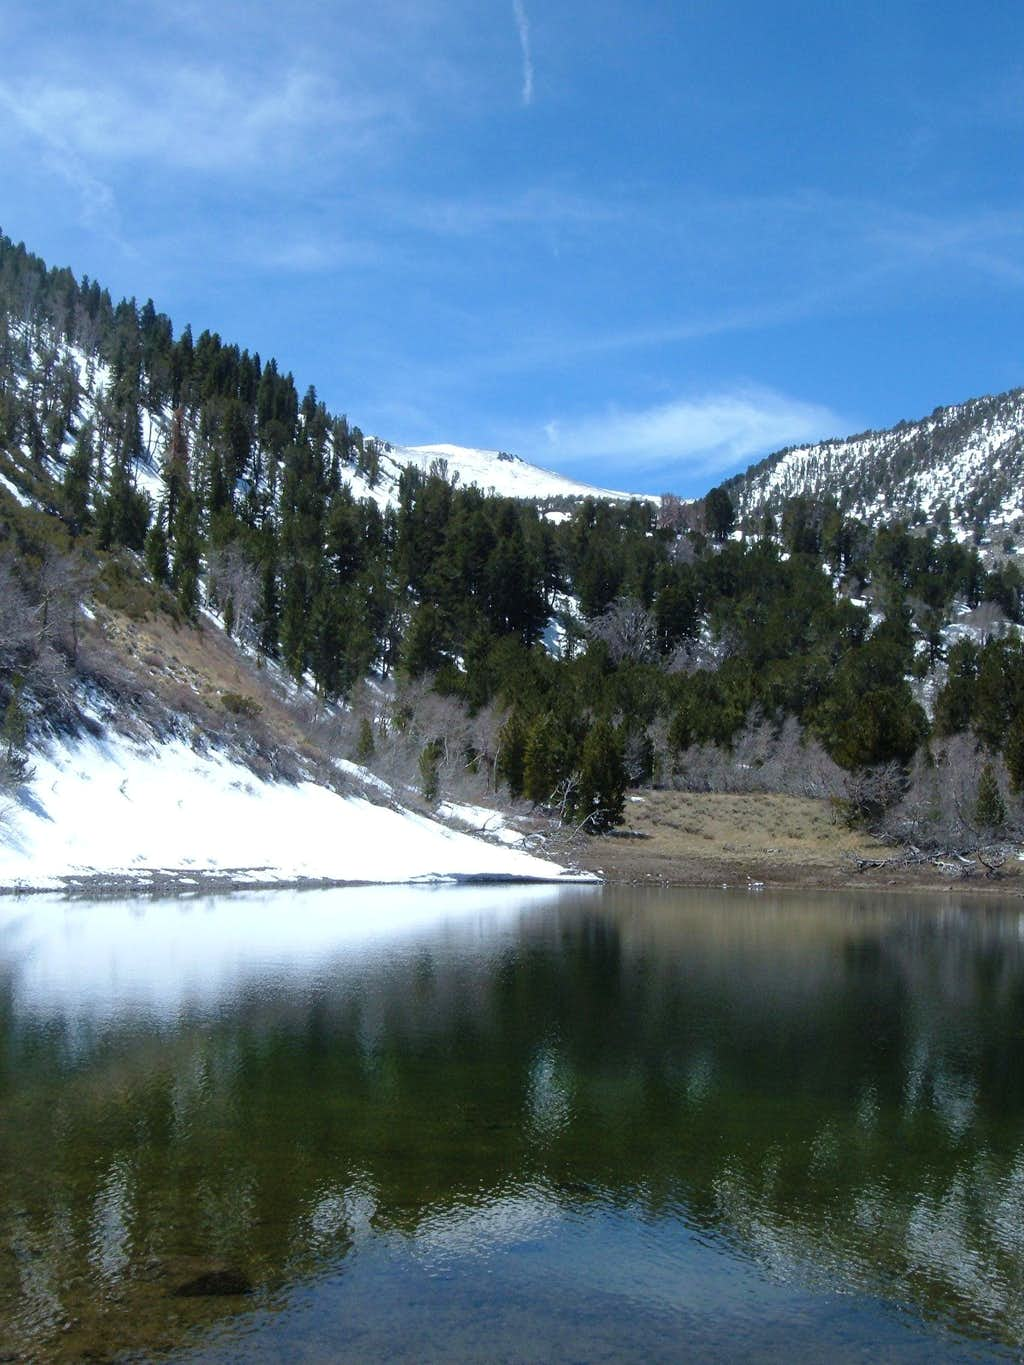 View from Church's pond up to Mount Rose